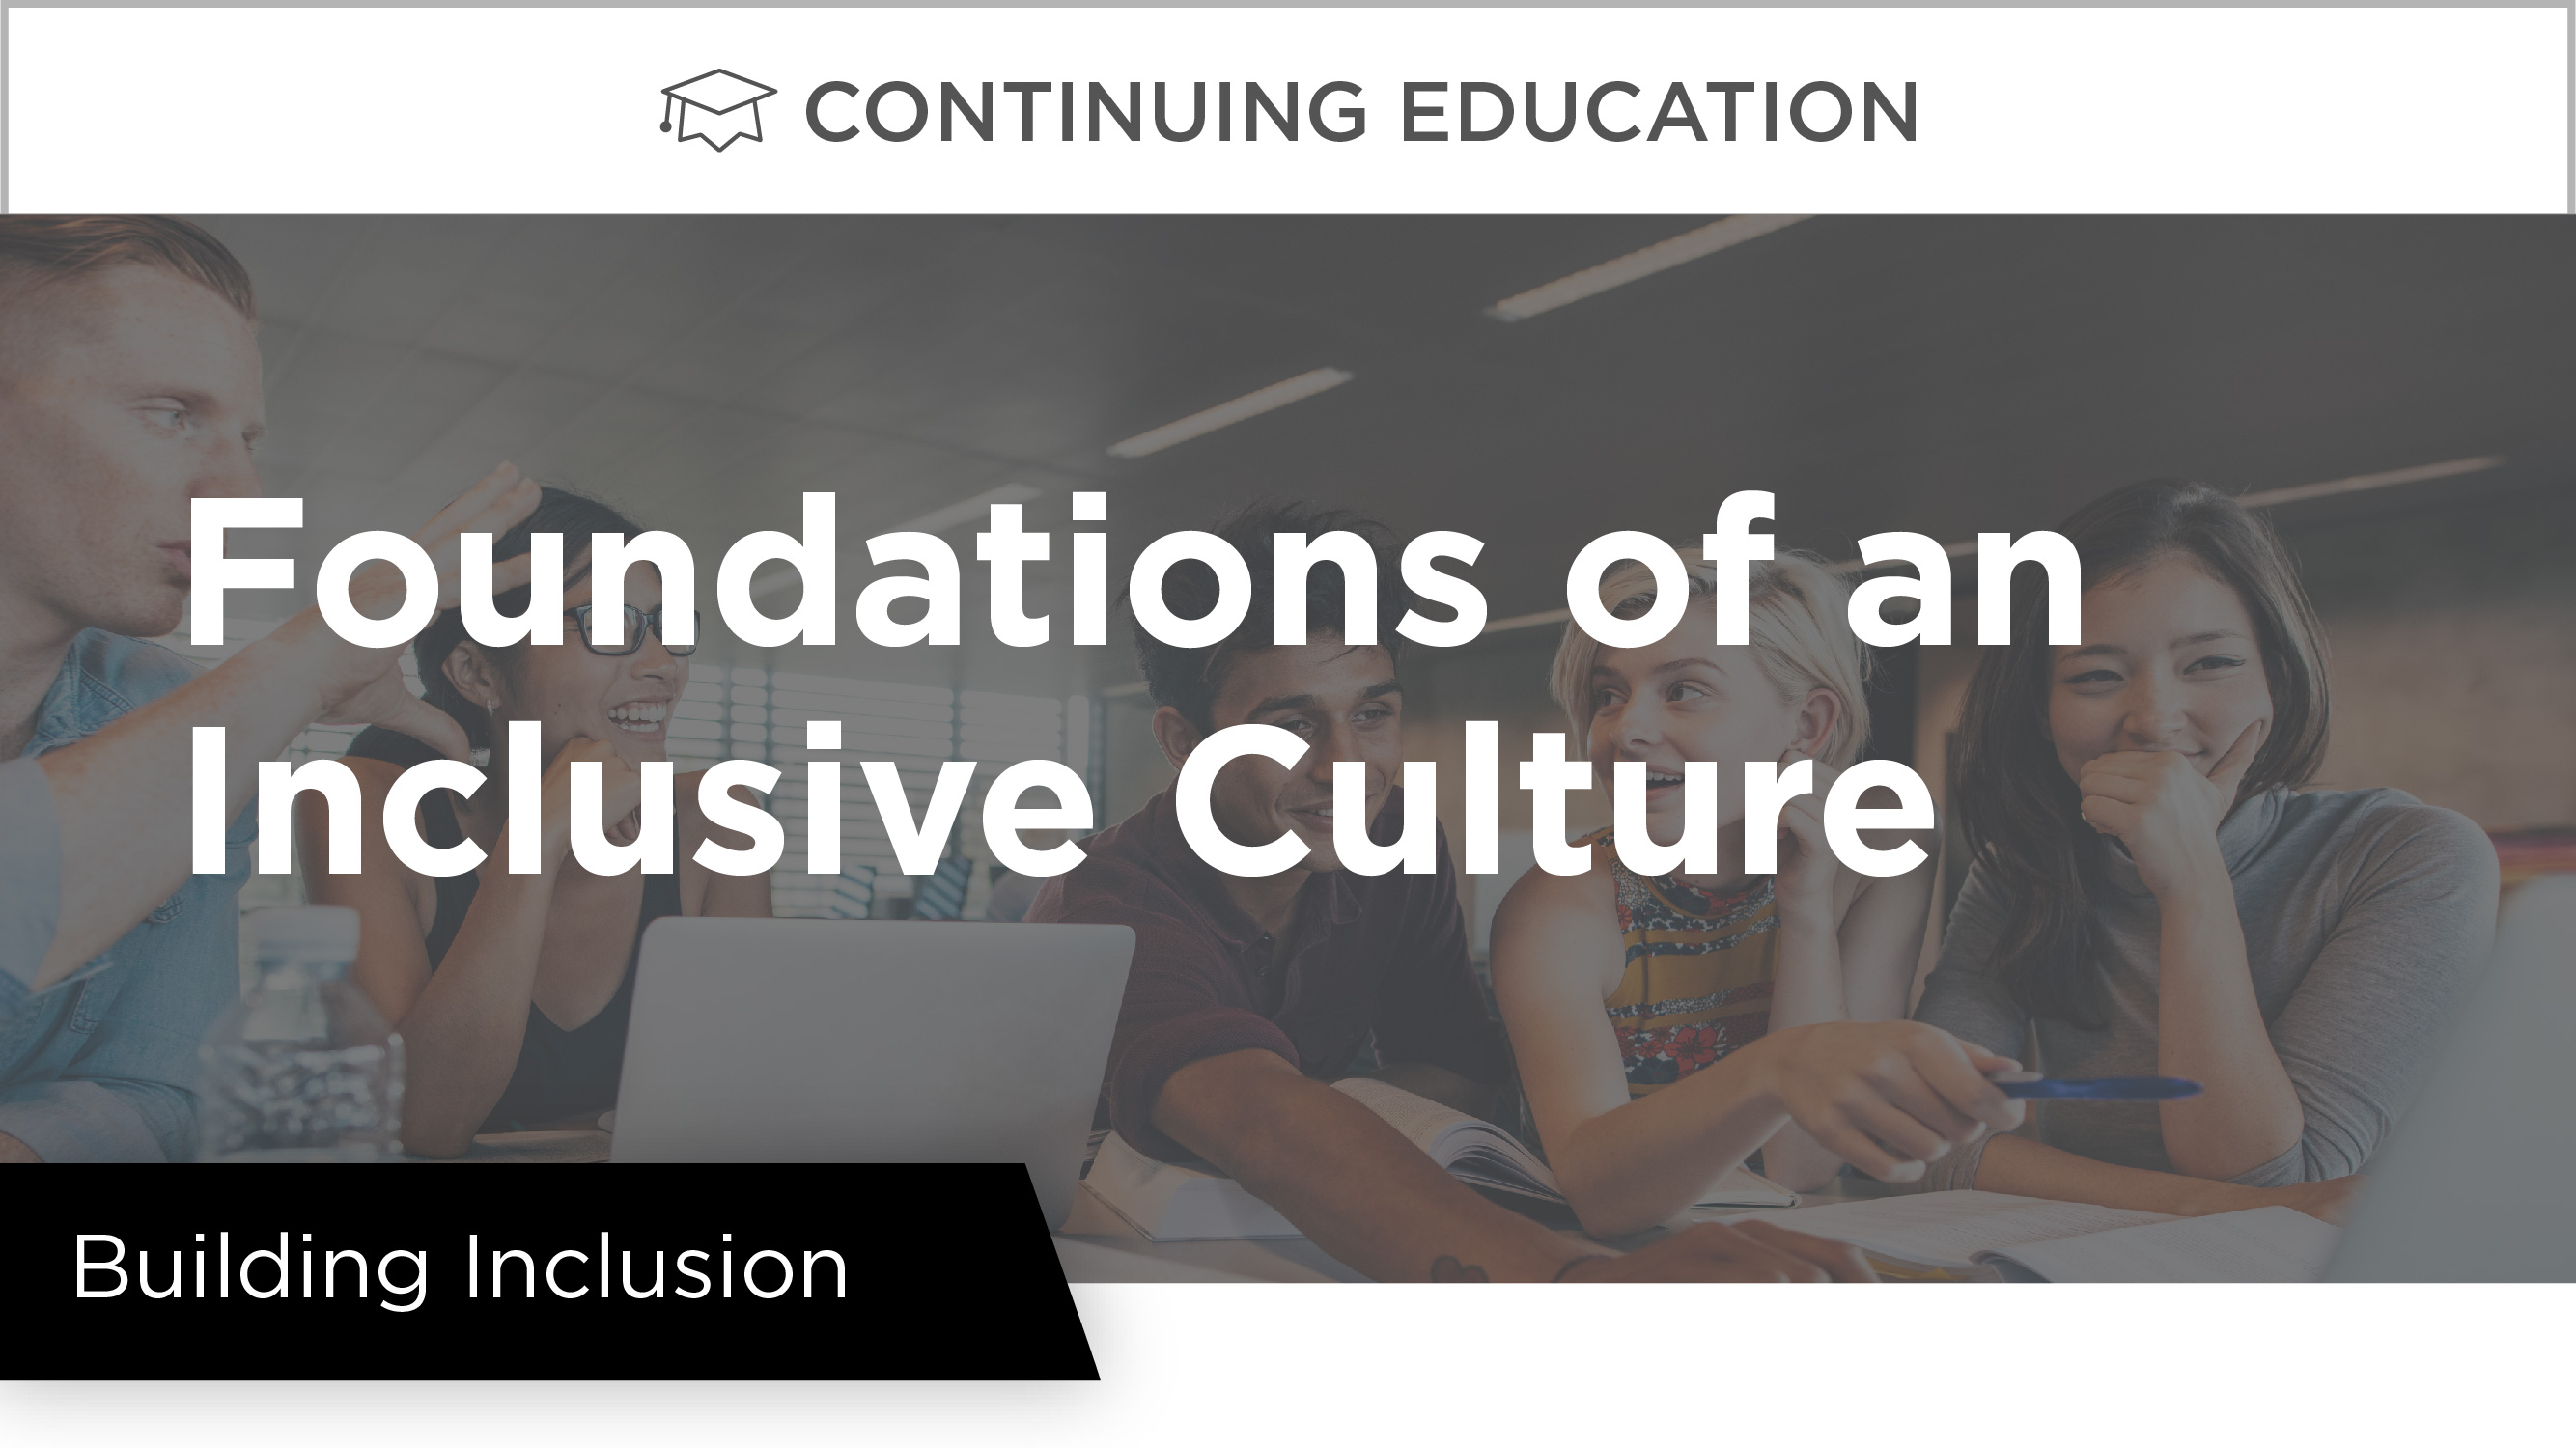 Building Inclusion: Foundations of an Inclusive Culture